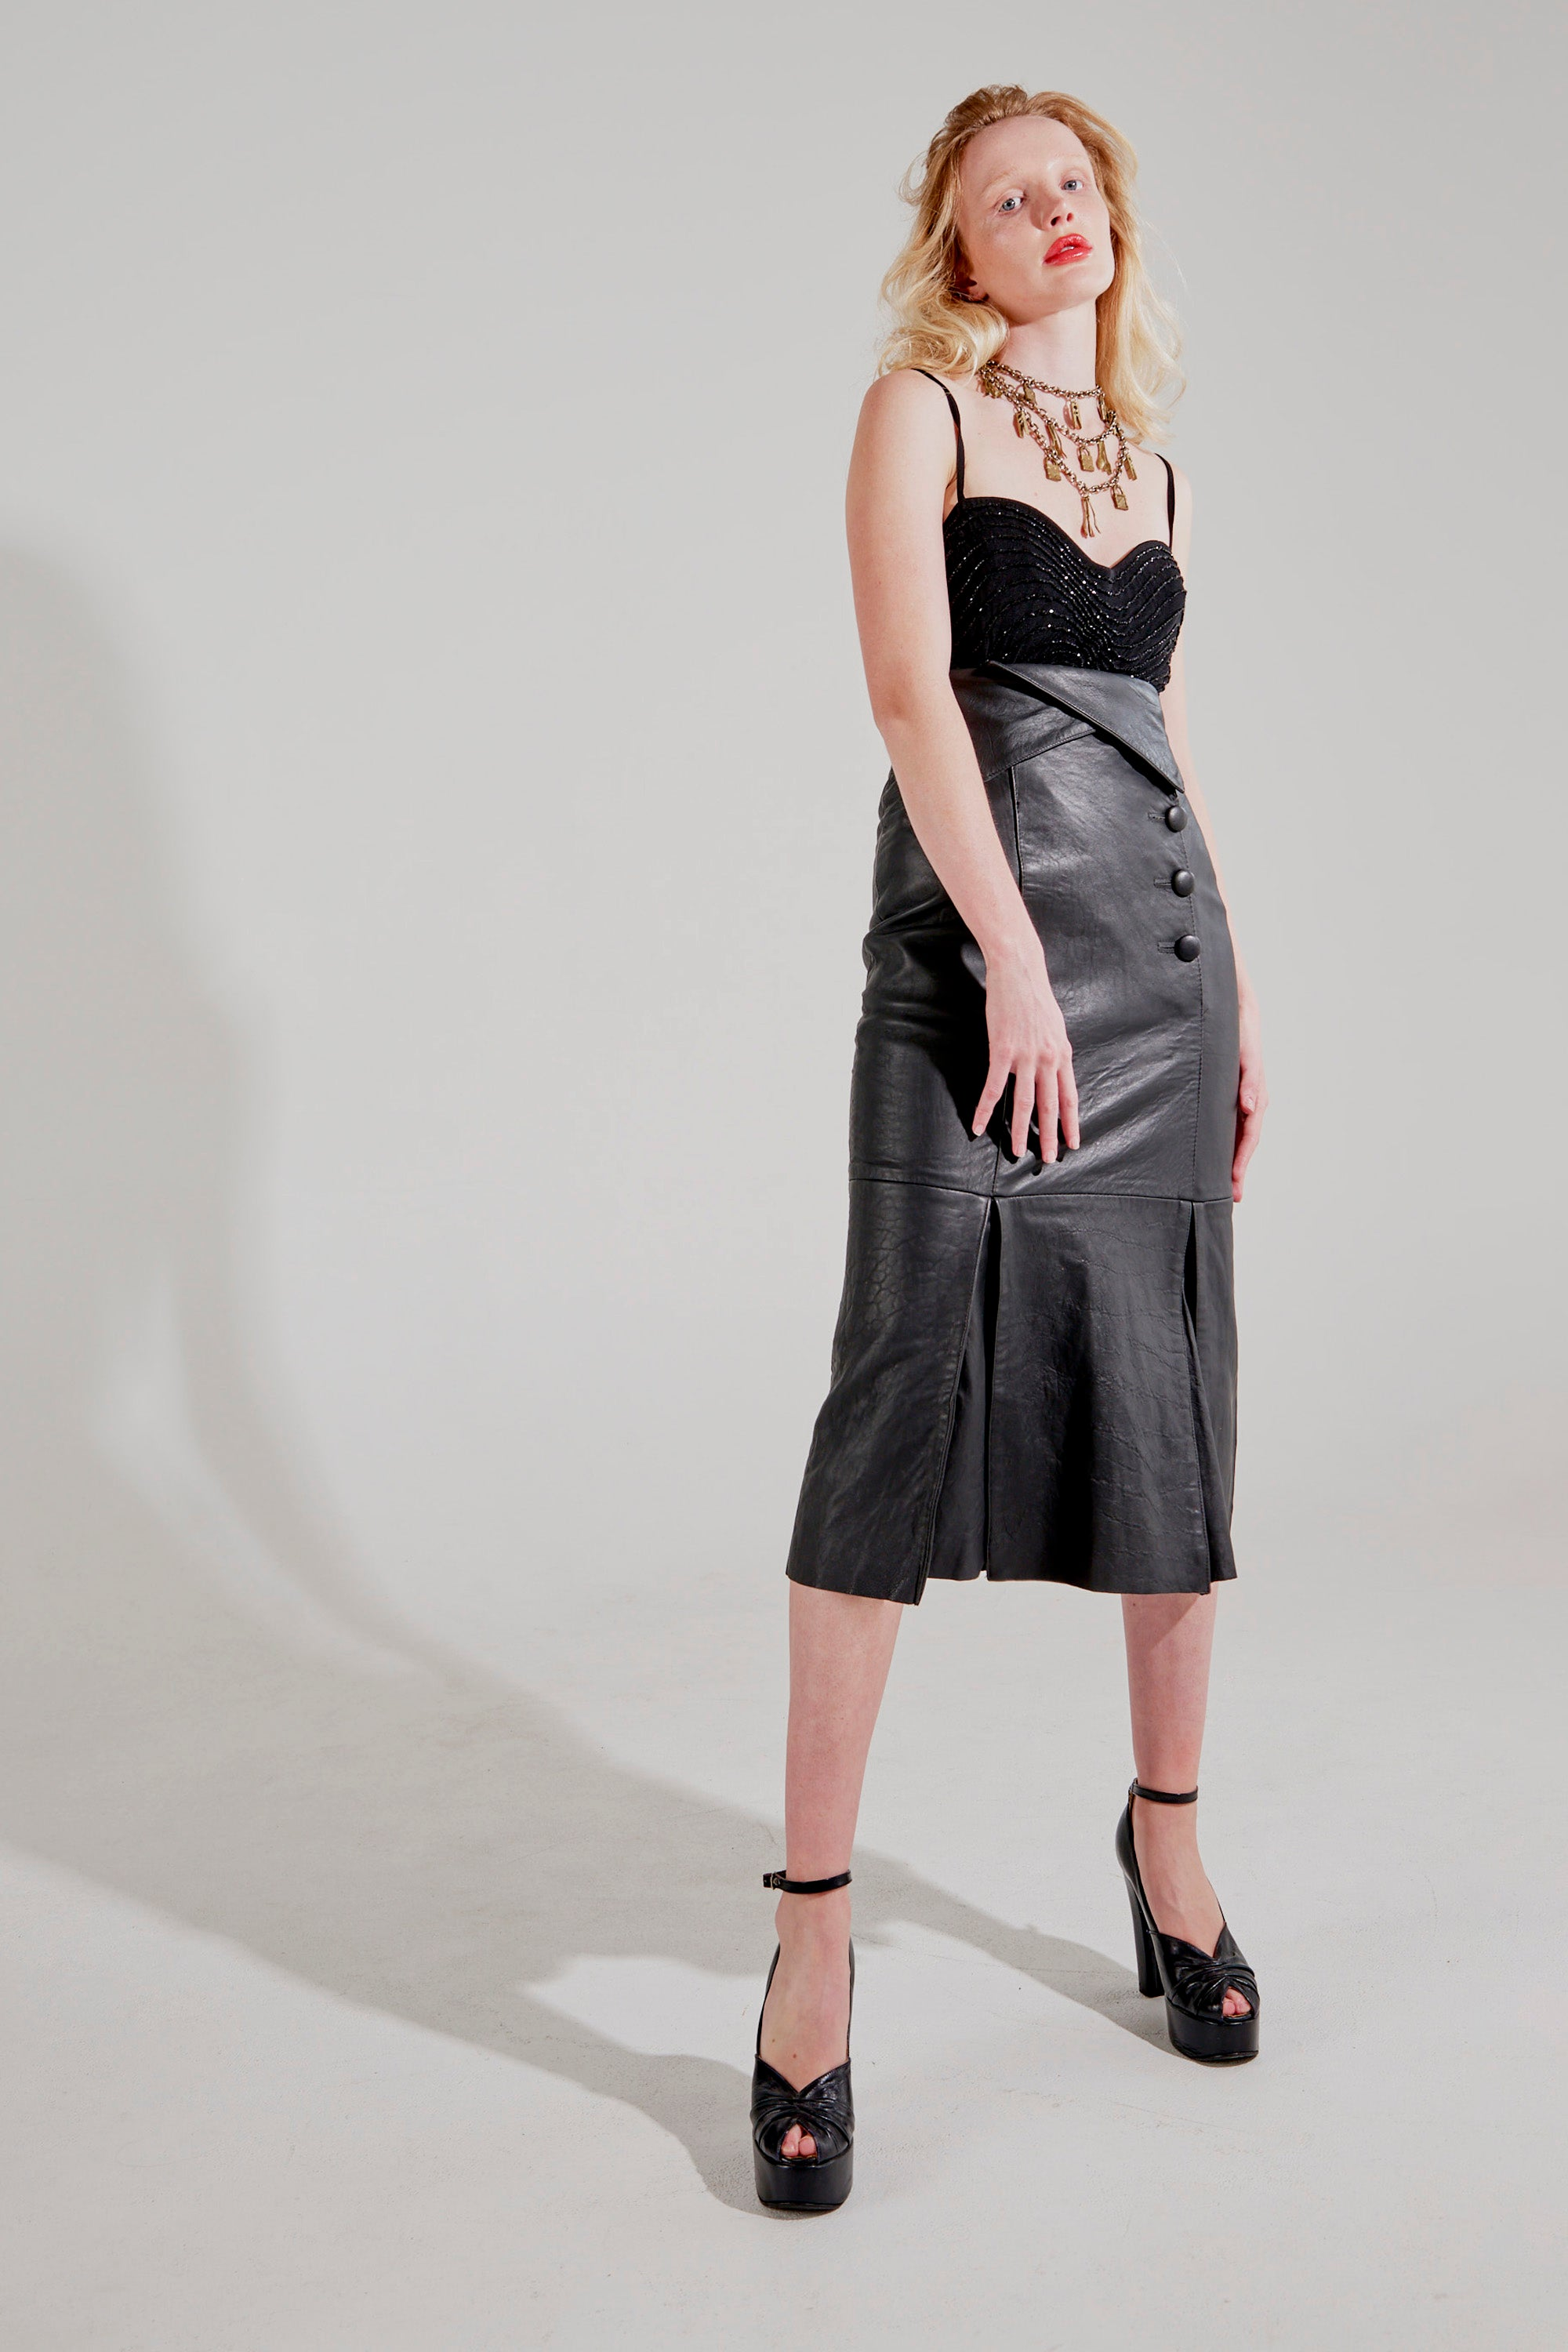 Vintage <br> 70's/80's super high waisted pleated leather maxi skirt